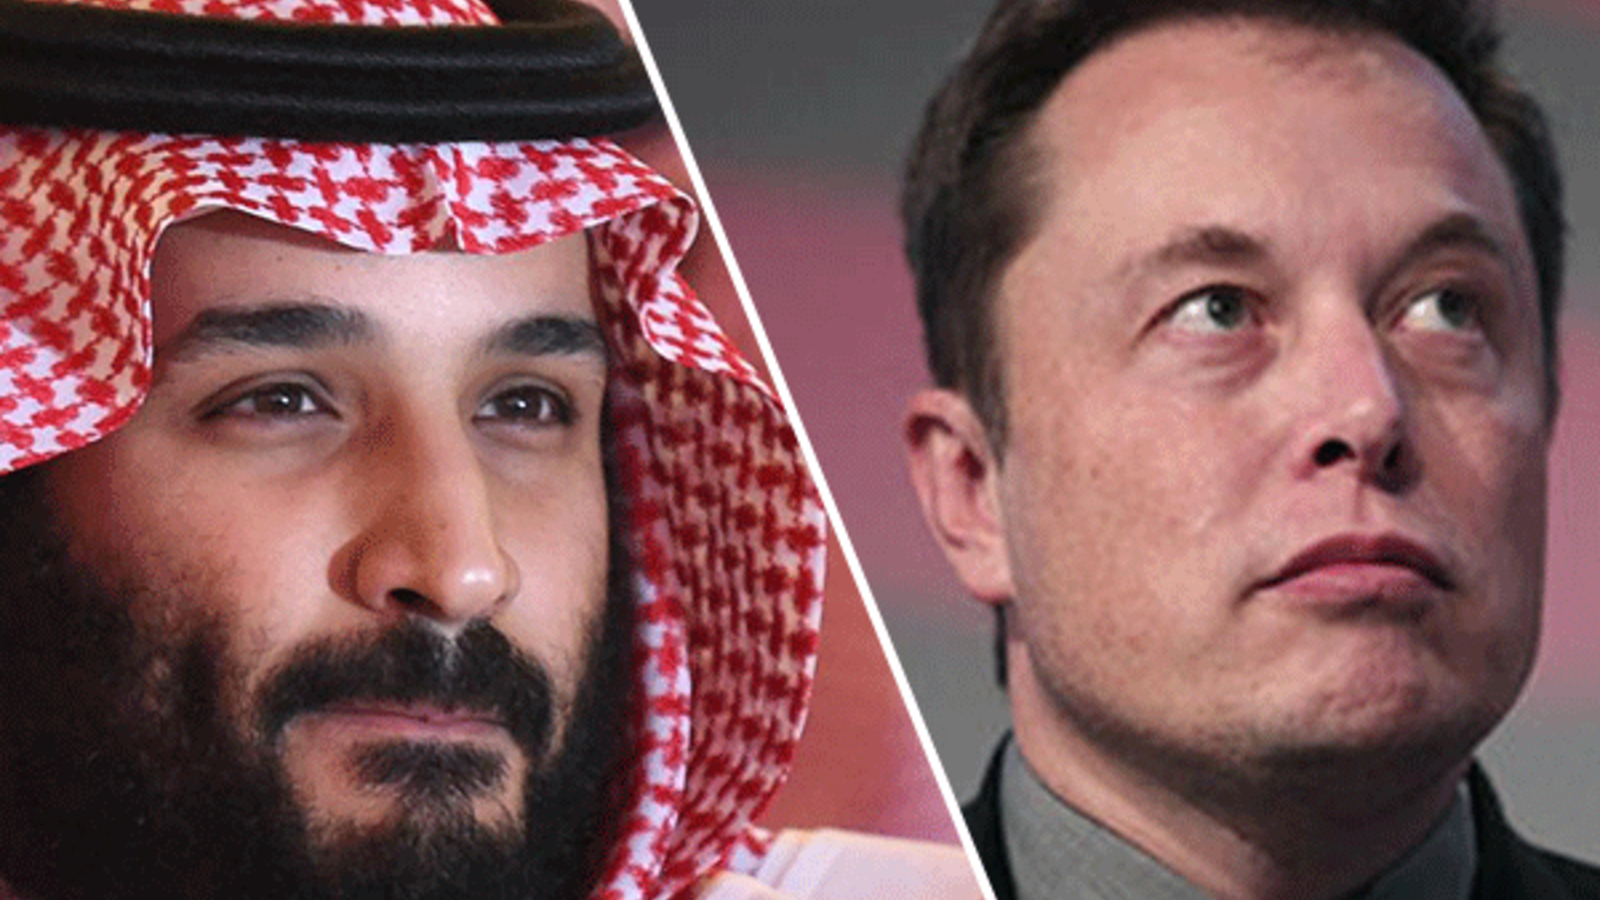 The billionaire Elon Musk announced via Twitter his plans to take Tesla private with the help of a Saudi Arabian multibillion funding. (AFP/File Photos)